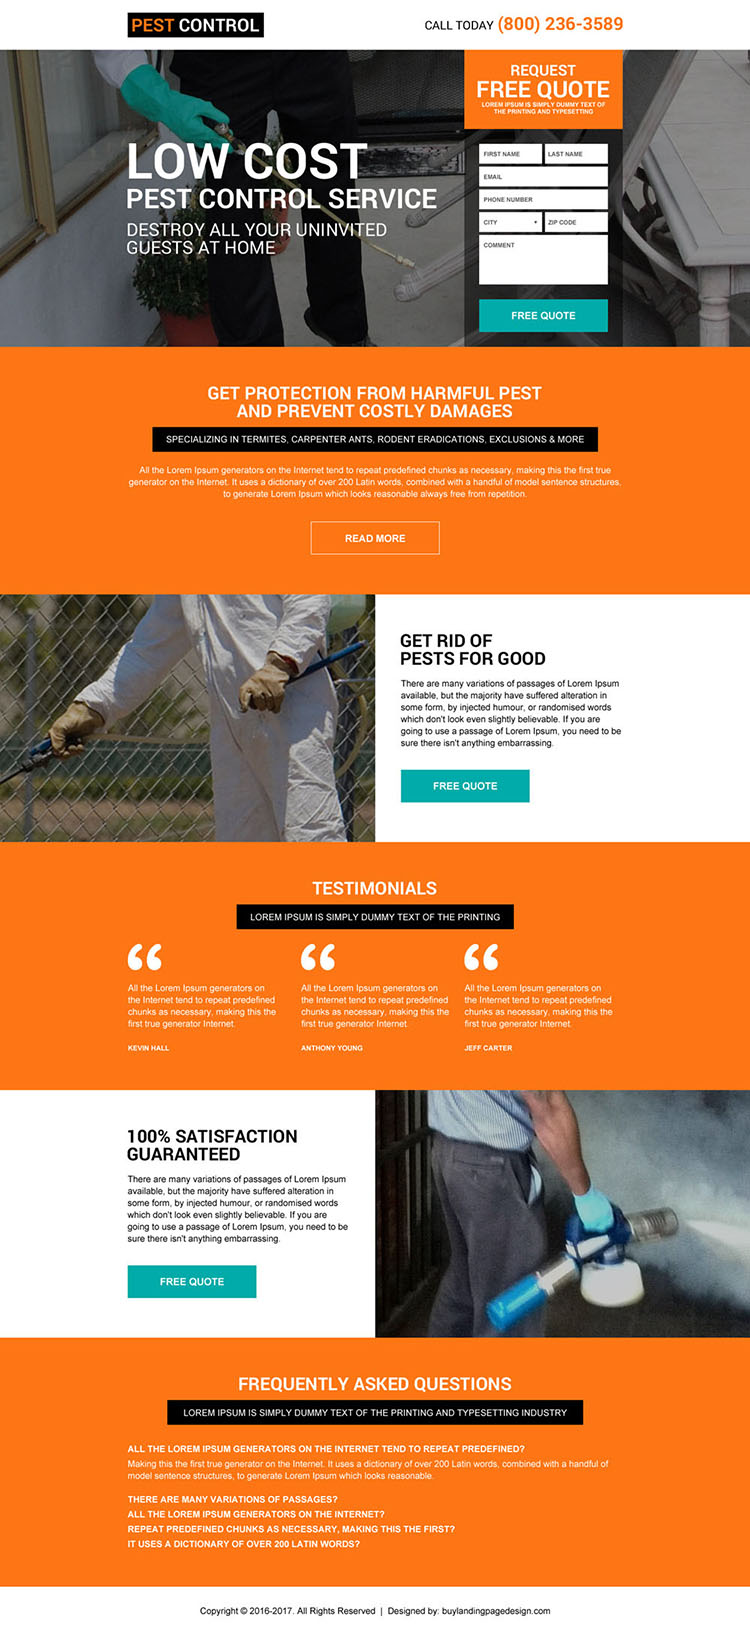 residential pest control service promoting landing page design